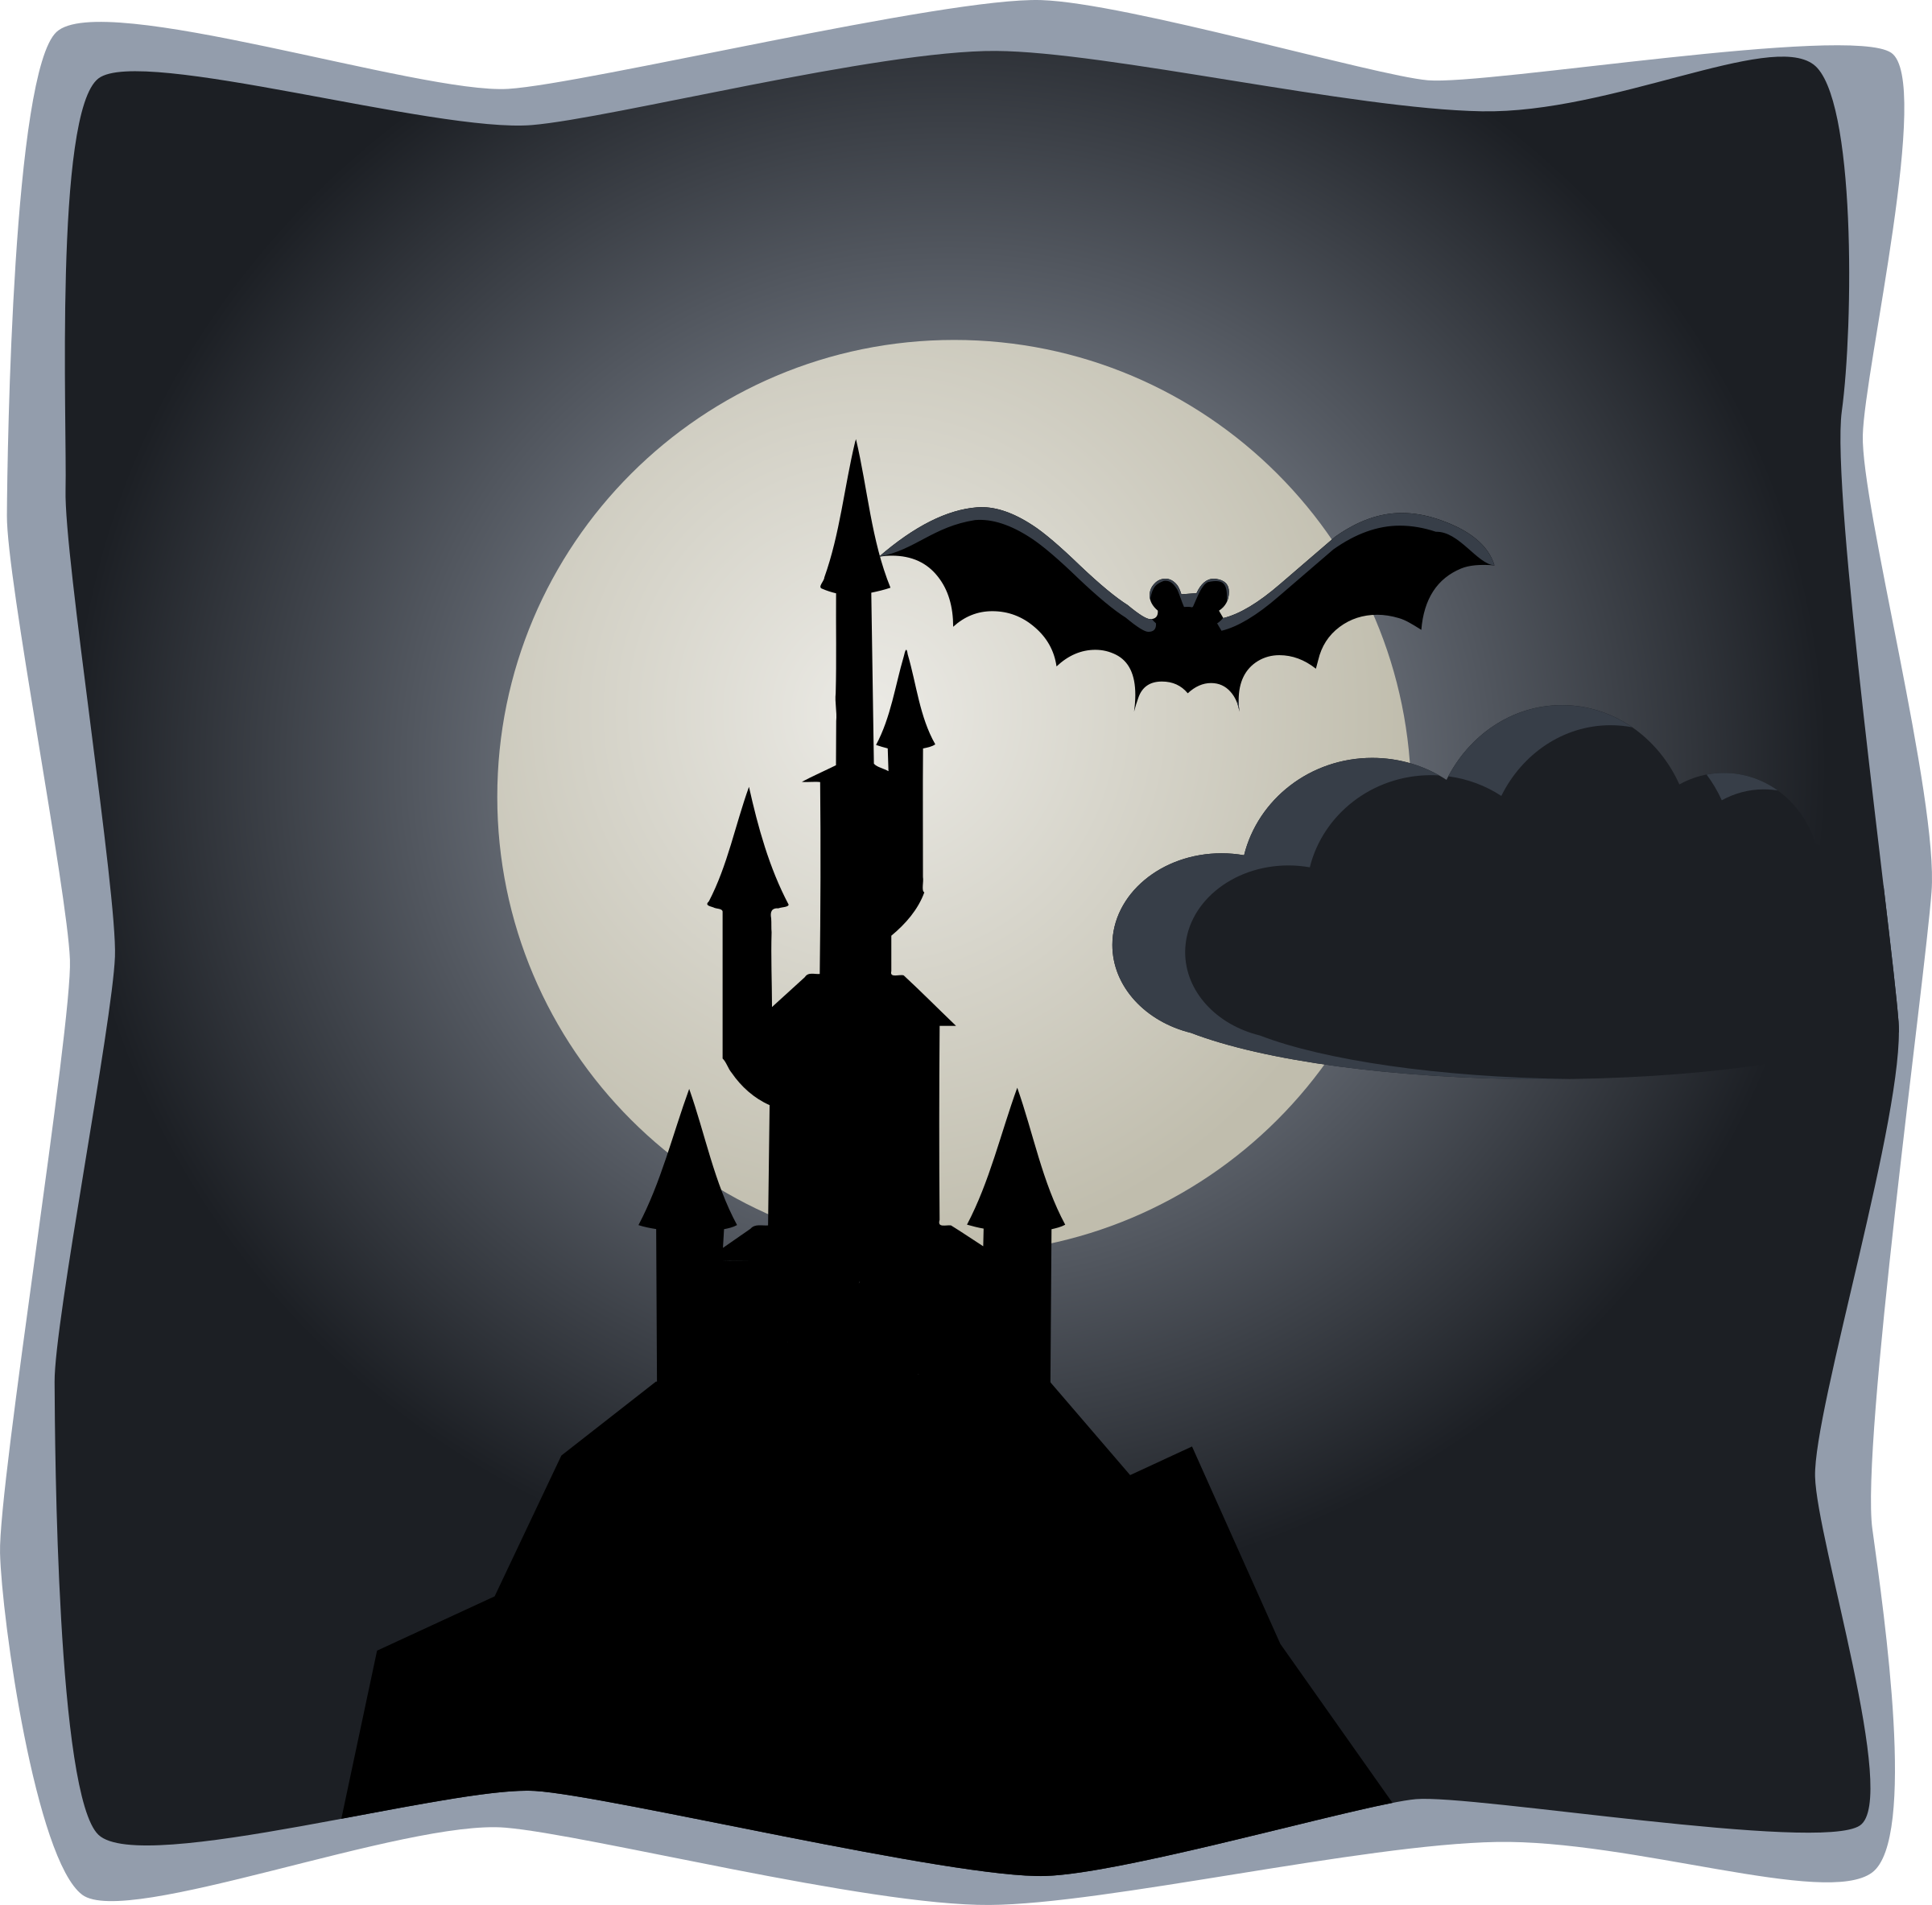 Spooky castle in full moon by lemmling